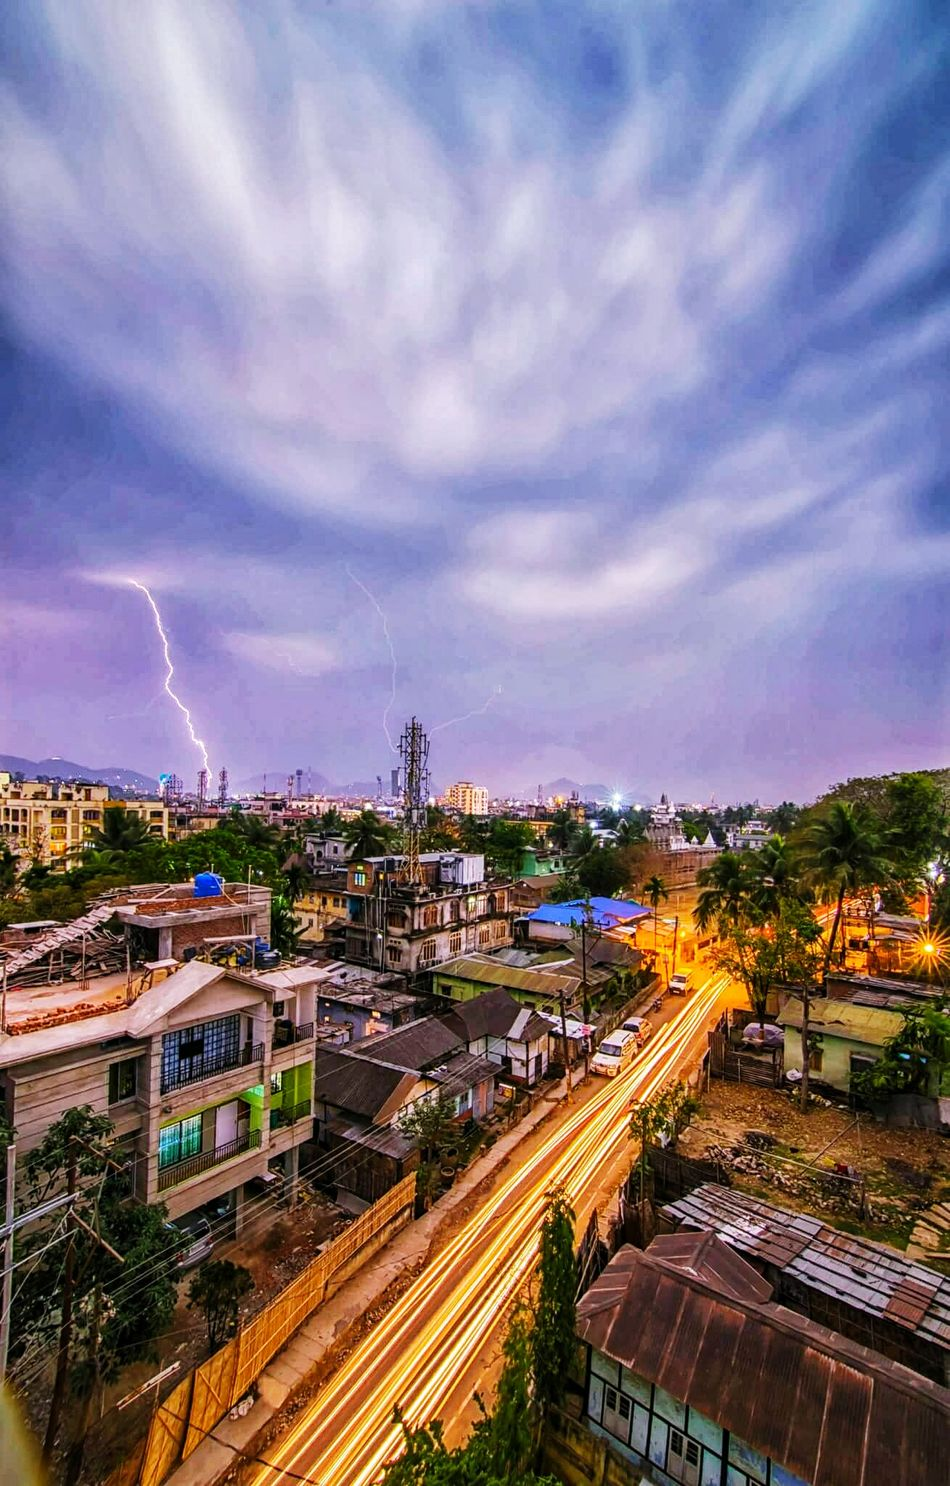 Night Thunerstorms Illuminated Sky Dramatic Sky Nature Thunderstorm High Angle View Light Trail Lightning Outdoors No People Cityscape City Power In Nature Beauty In Nature Skyscrapers Cloud - Sky Rainy Weather Water Landscape Tree First Eyeem Photo Nature